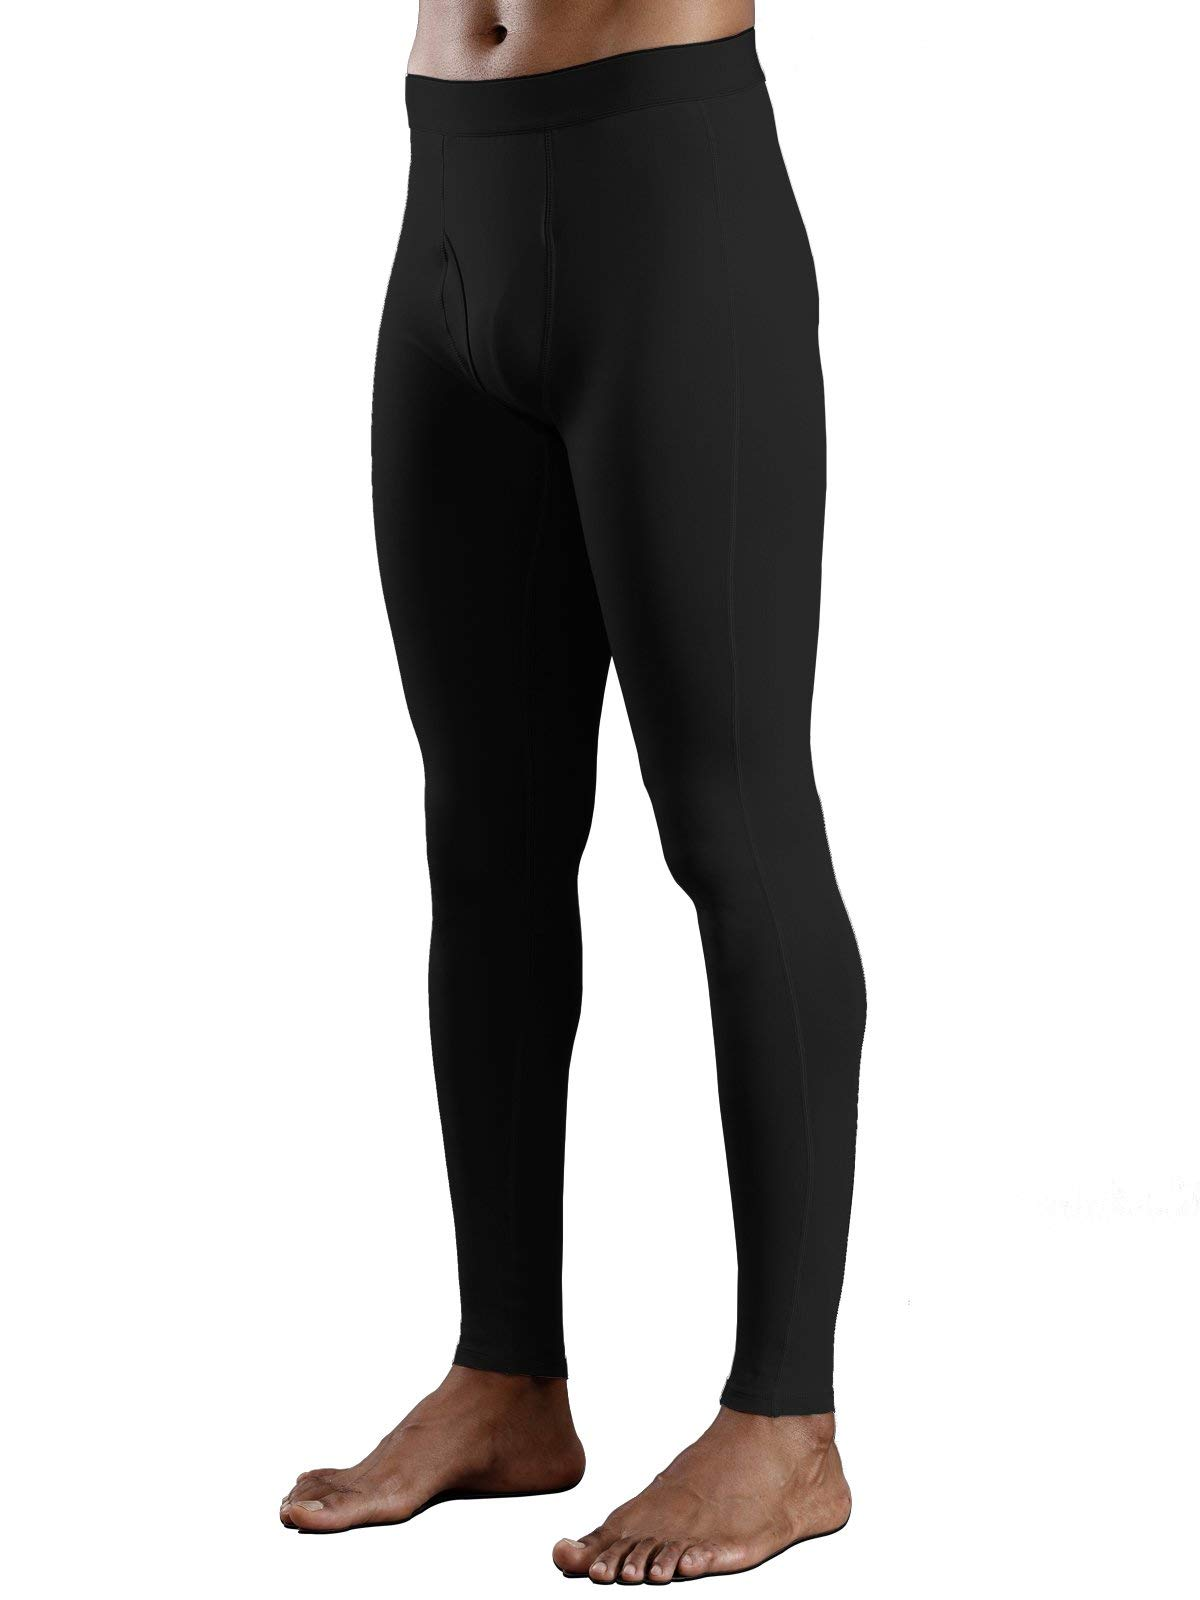 Willit Men's Thermal Underwear Pants Lightweight Fleece Lined Long Johns Bottoms Lightweight Base Layer Black L by Willit